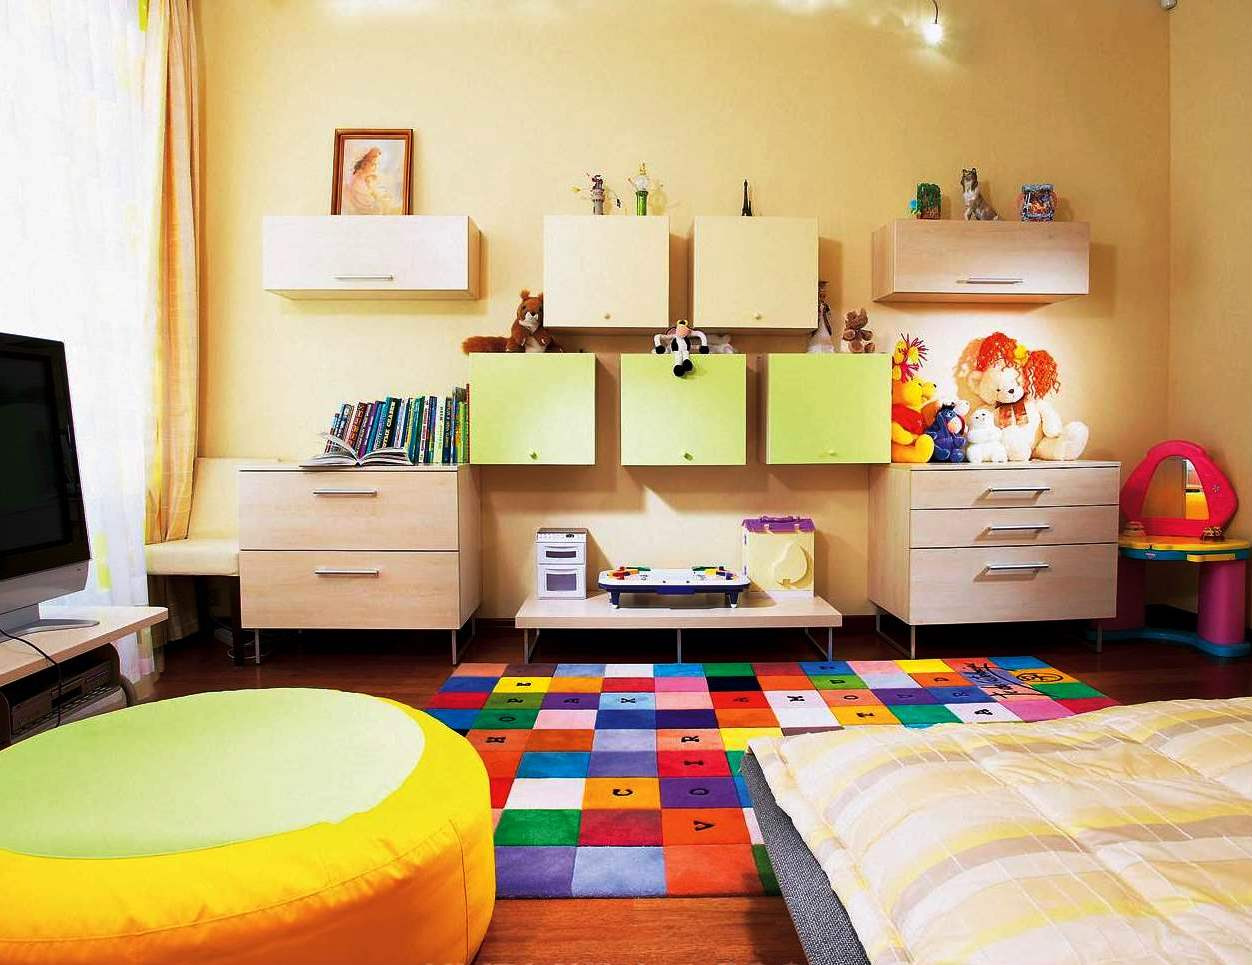 Rainbow Kids Rooms Vamos Organizar A Bagunça Decor Alternativa